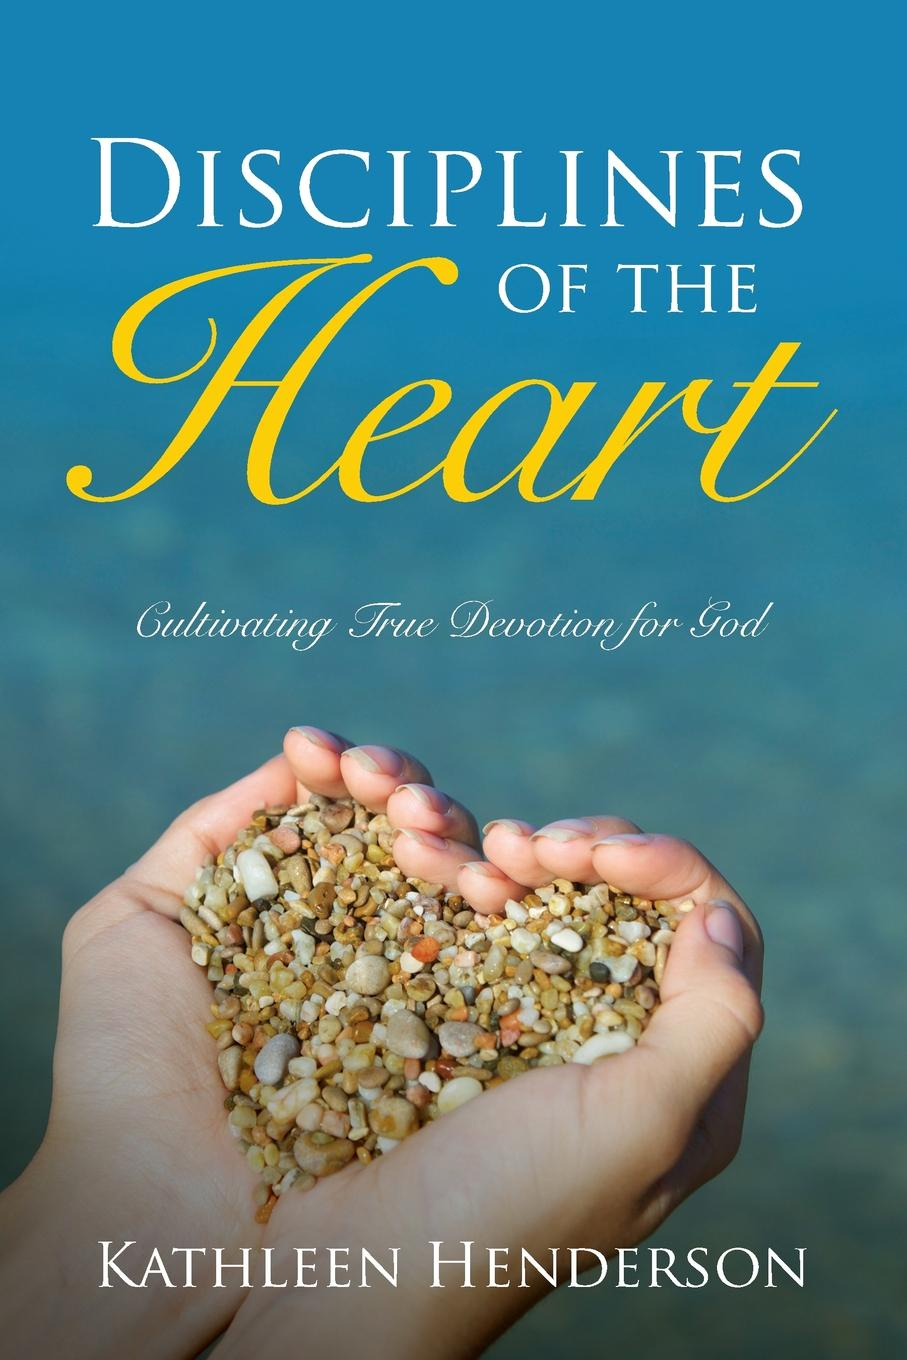 Kathleen N Henderson Disciplines of the Heart - Cultivating True Devotion for God the heart of rachael